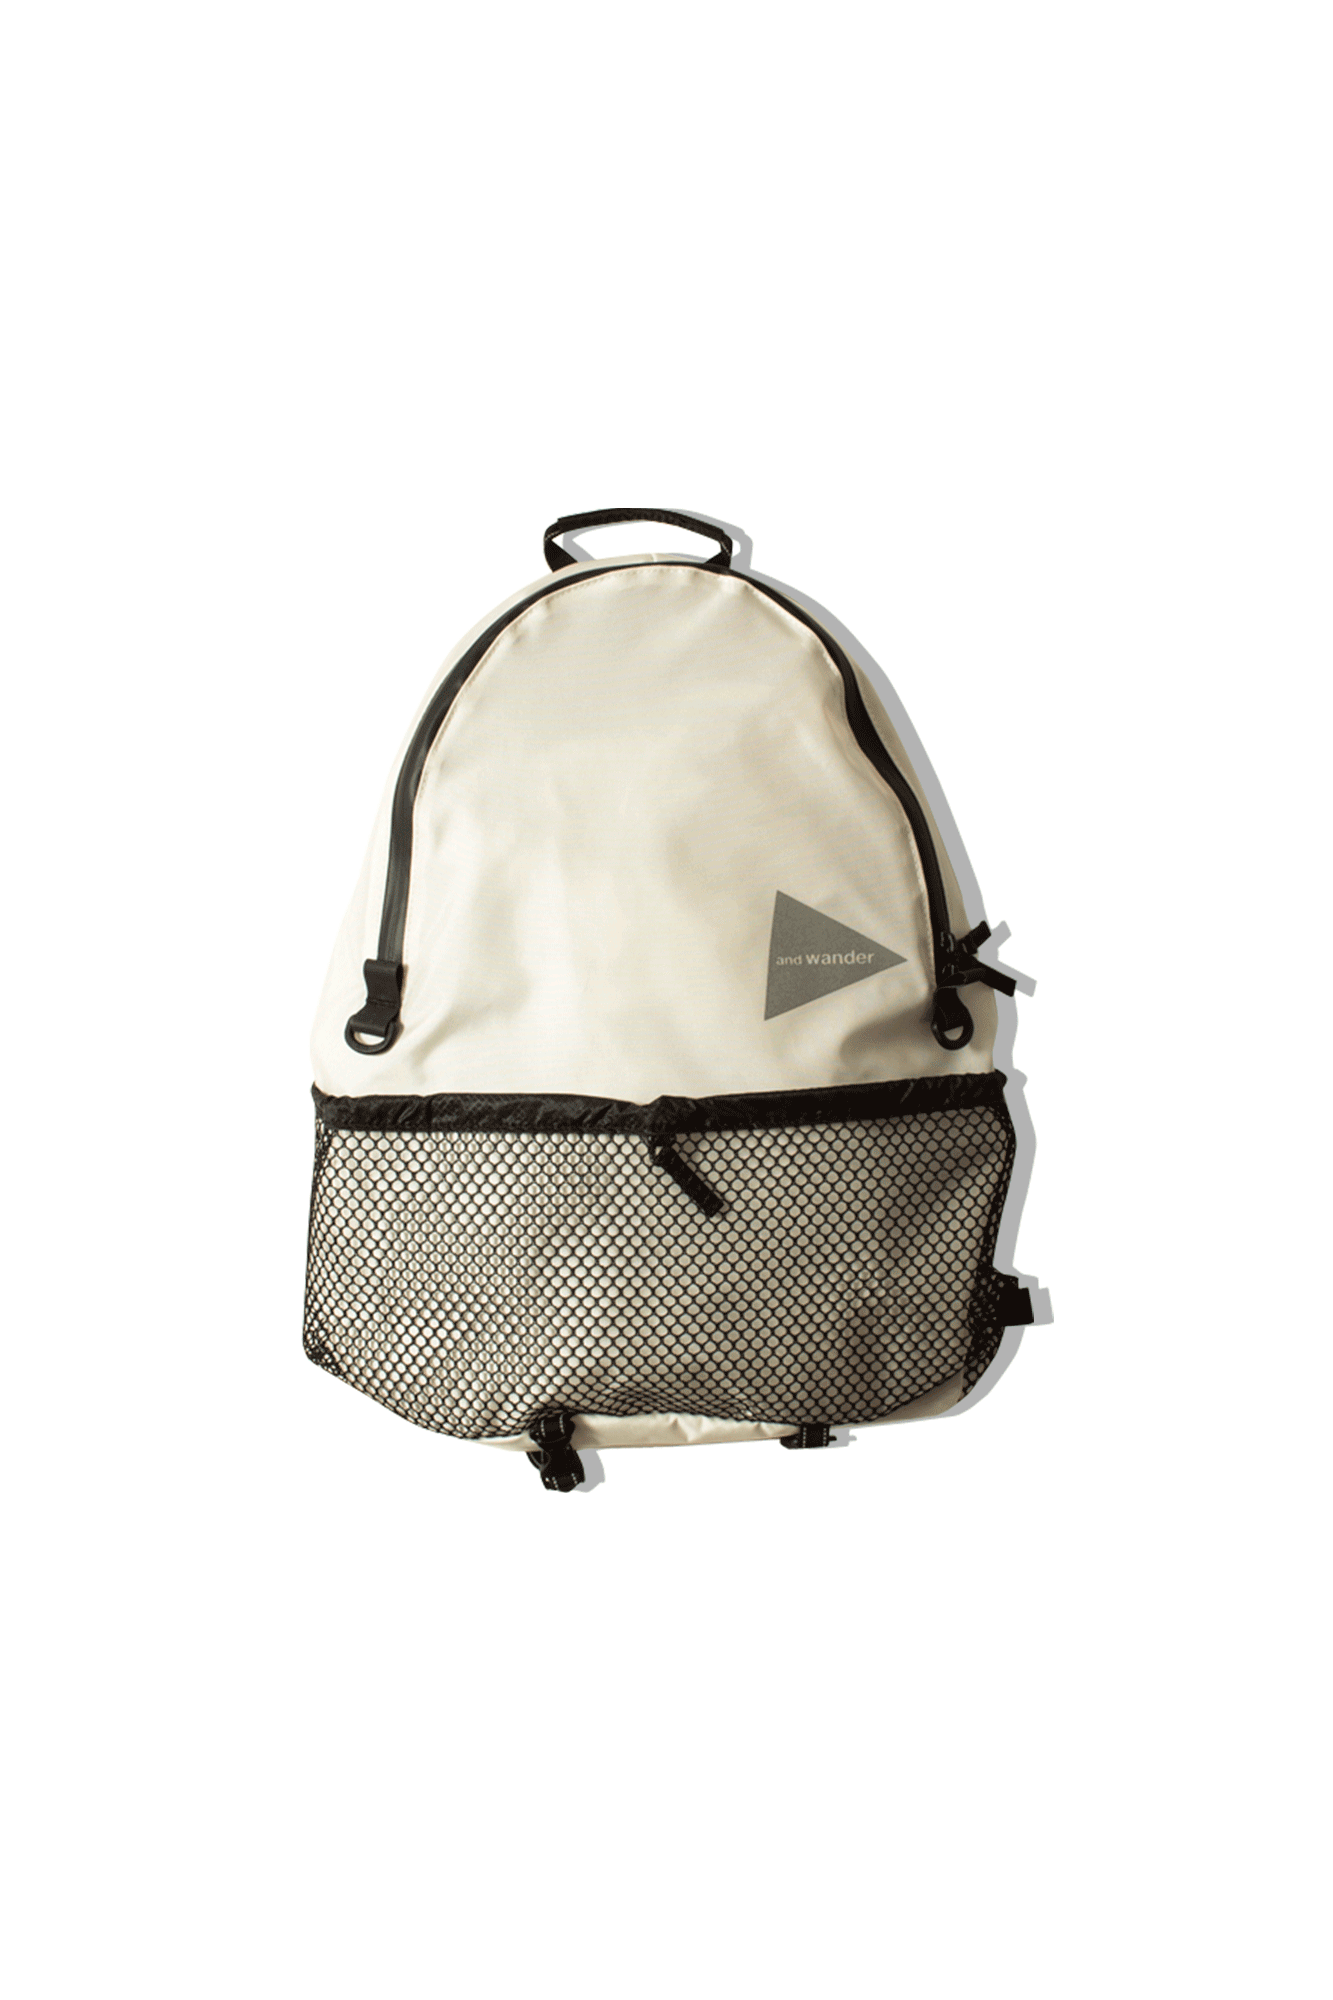 And Wander Zaini 20L Daypack Bianco AW-AA990#000#WHT#OS - One Block Down